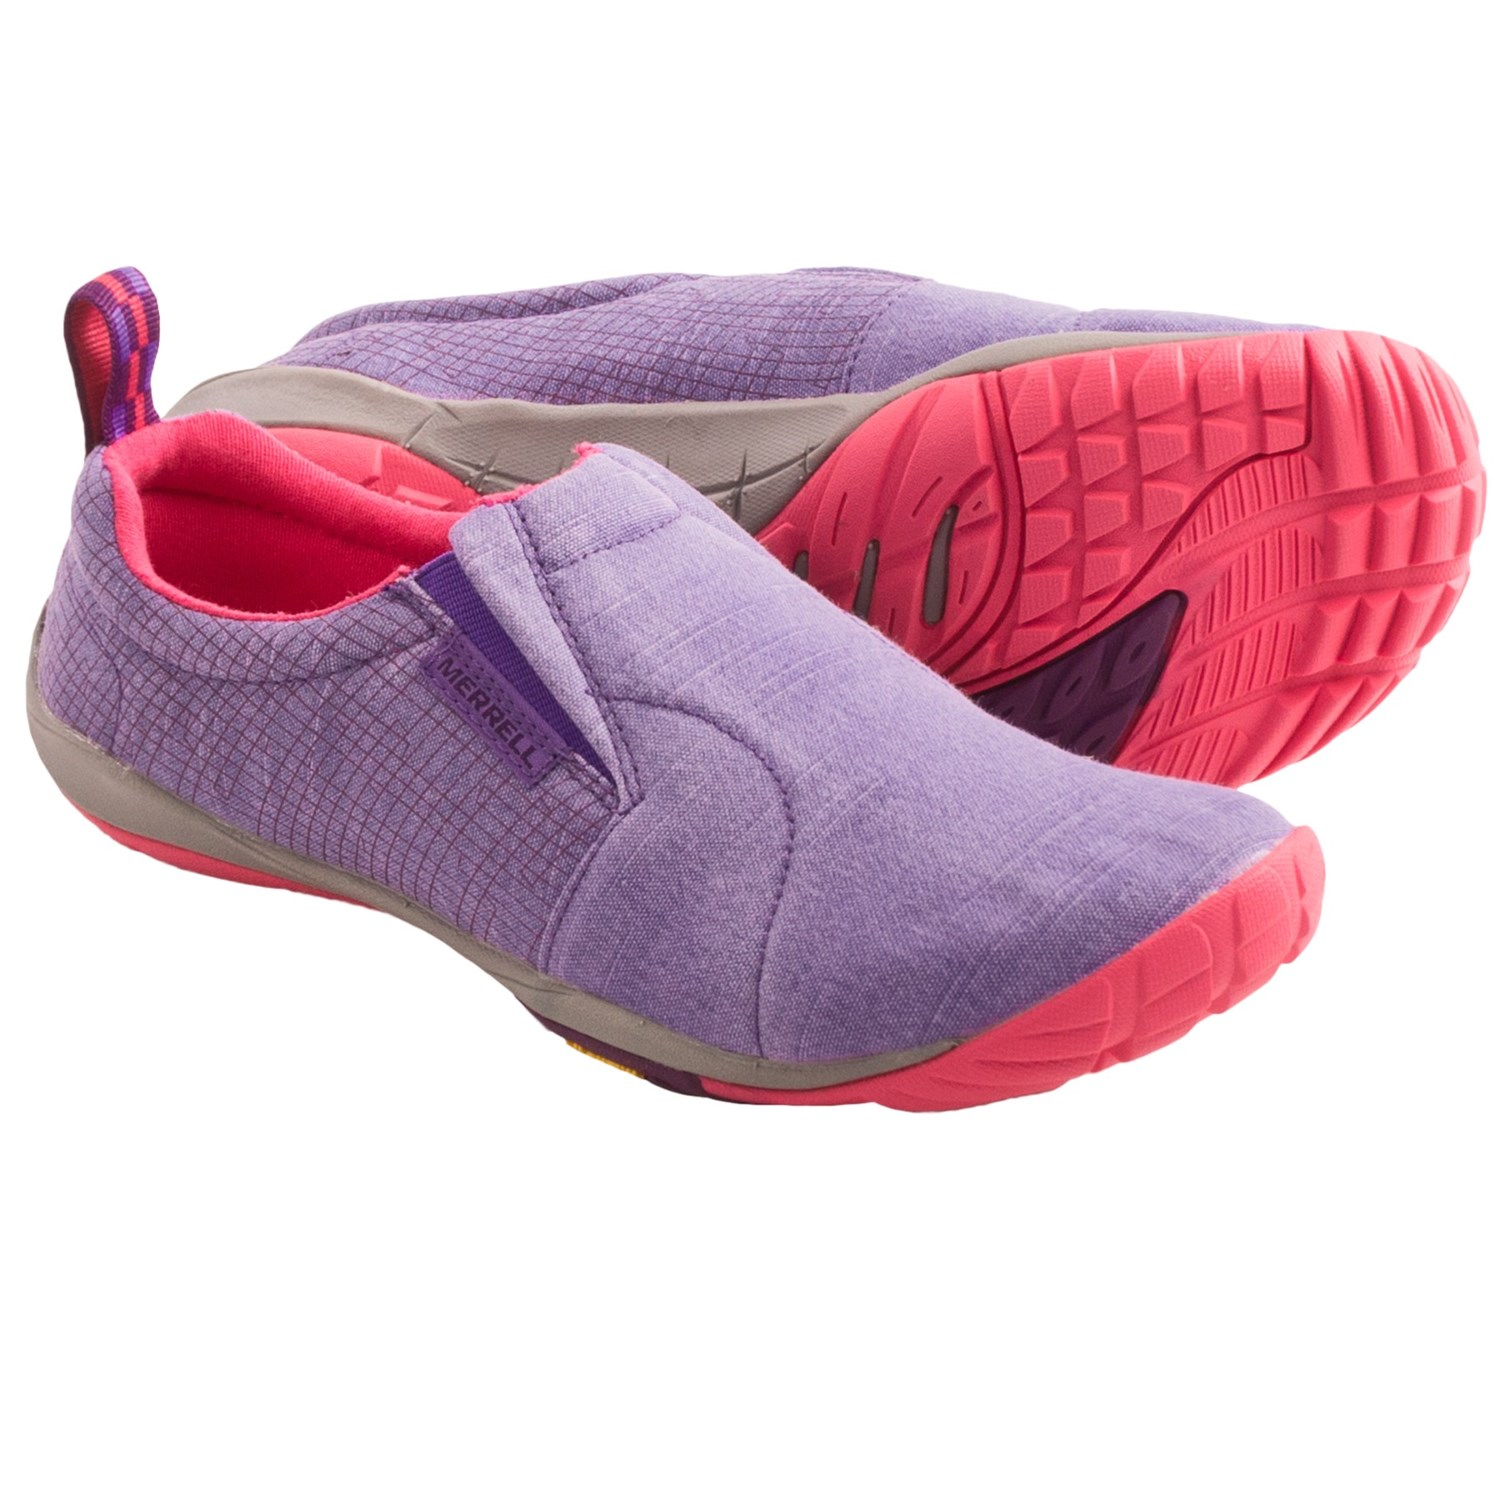 merrell jungle glove canvas shoes minimalist for